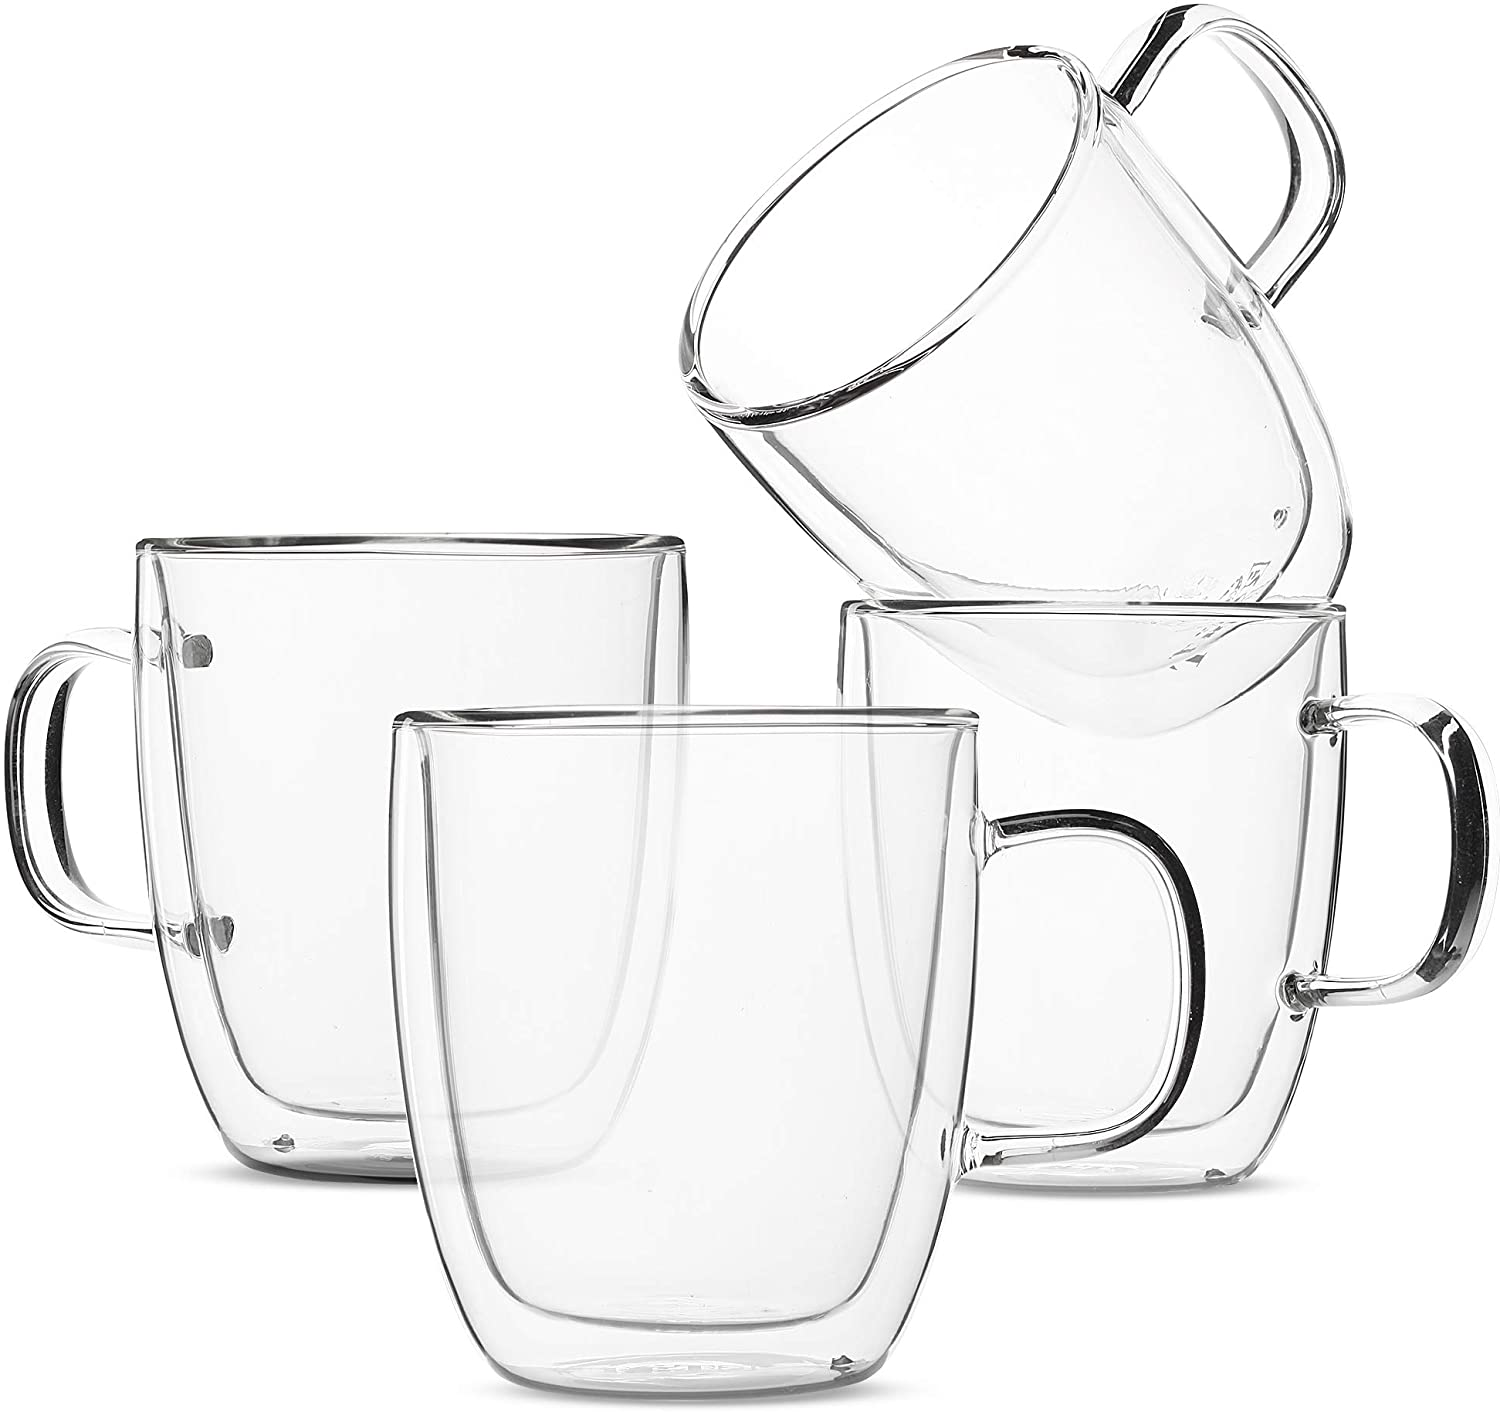 BTaT- Double Wall Glass Cups, Set of 4 (8 oz, 240 ml), Tea Cups, Glass Coffee Mugs, Cappuccino Cups, Latte Cups, Latte Mug, Clear Coffee Cup, Espresso Glass, Glass Tea Cups, Glass Coffee Cups